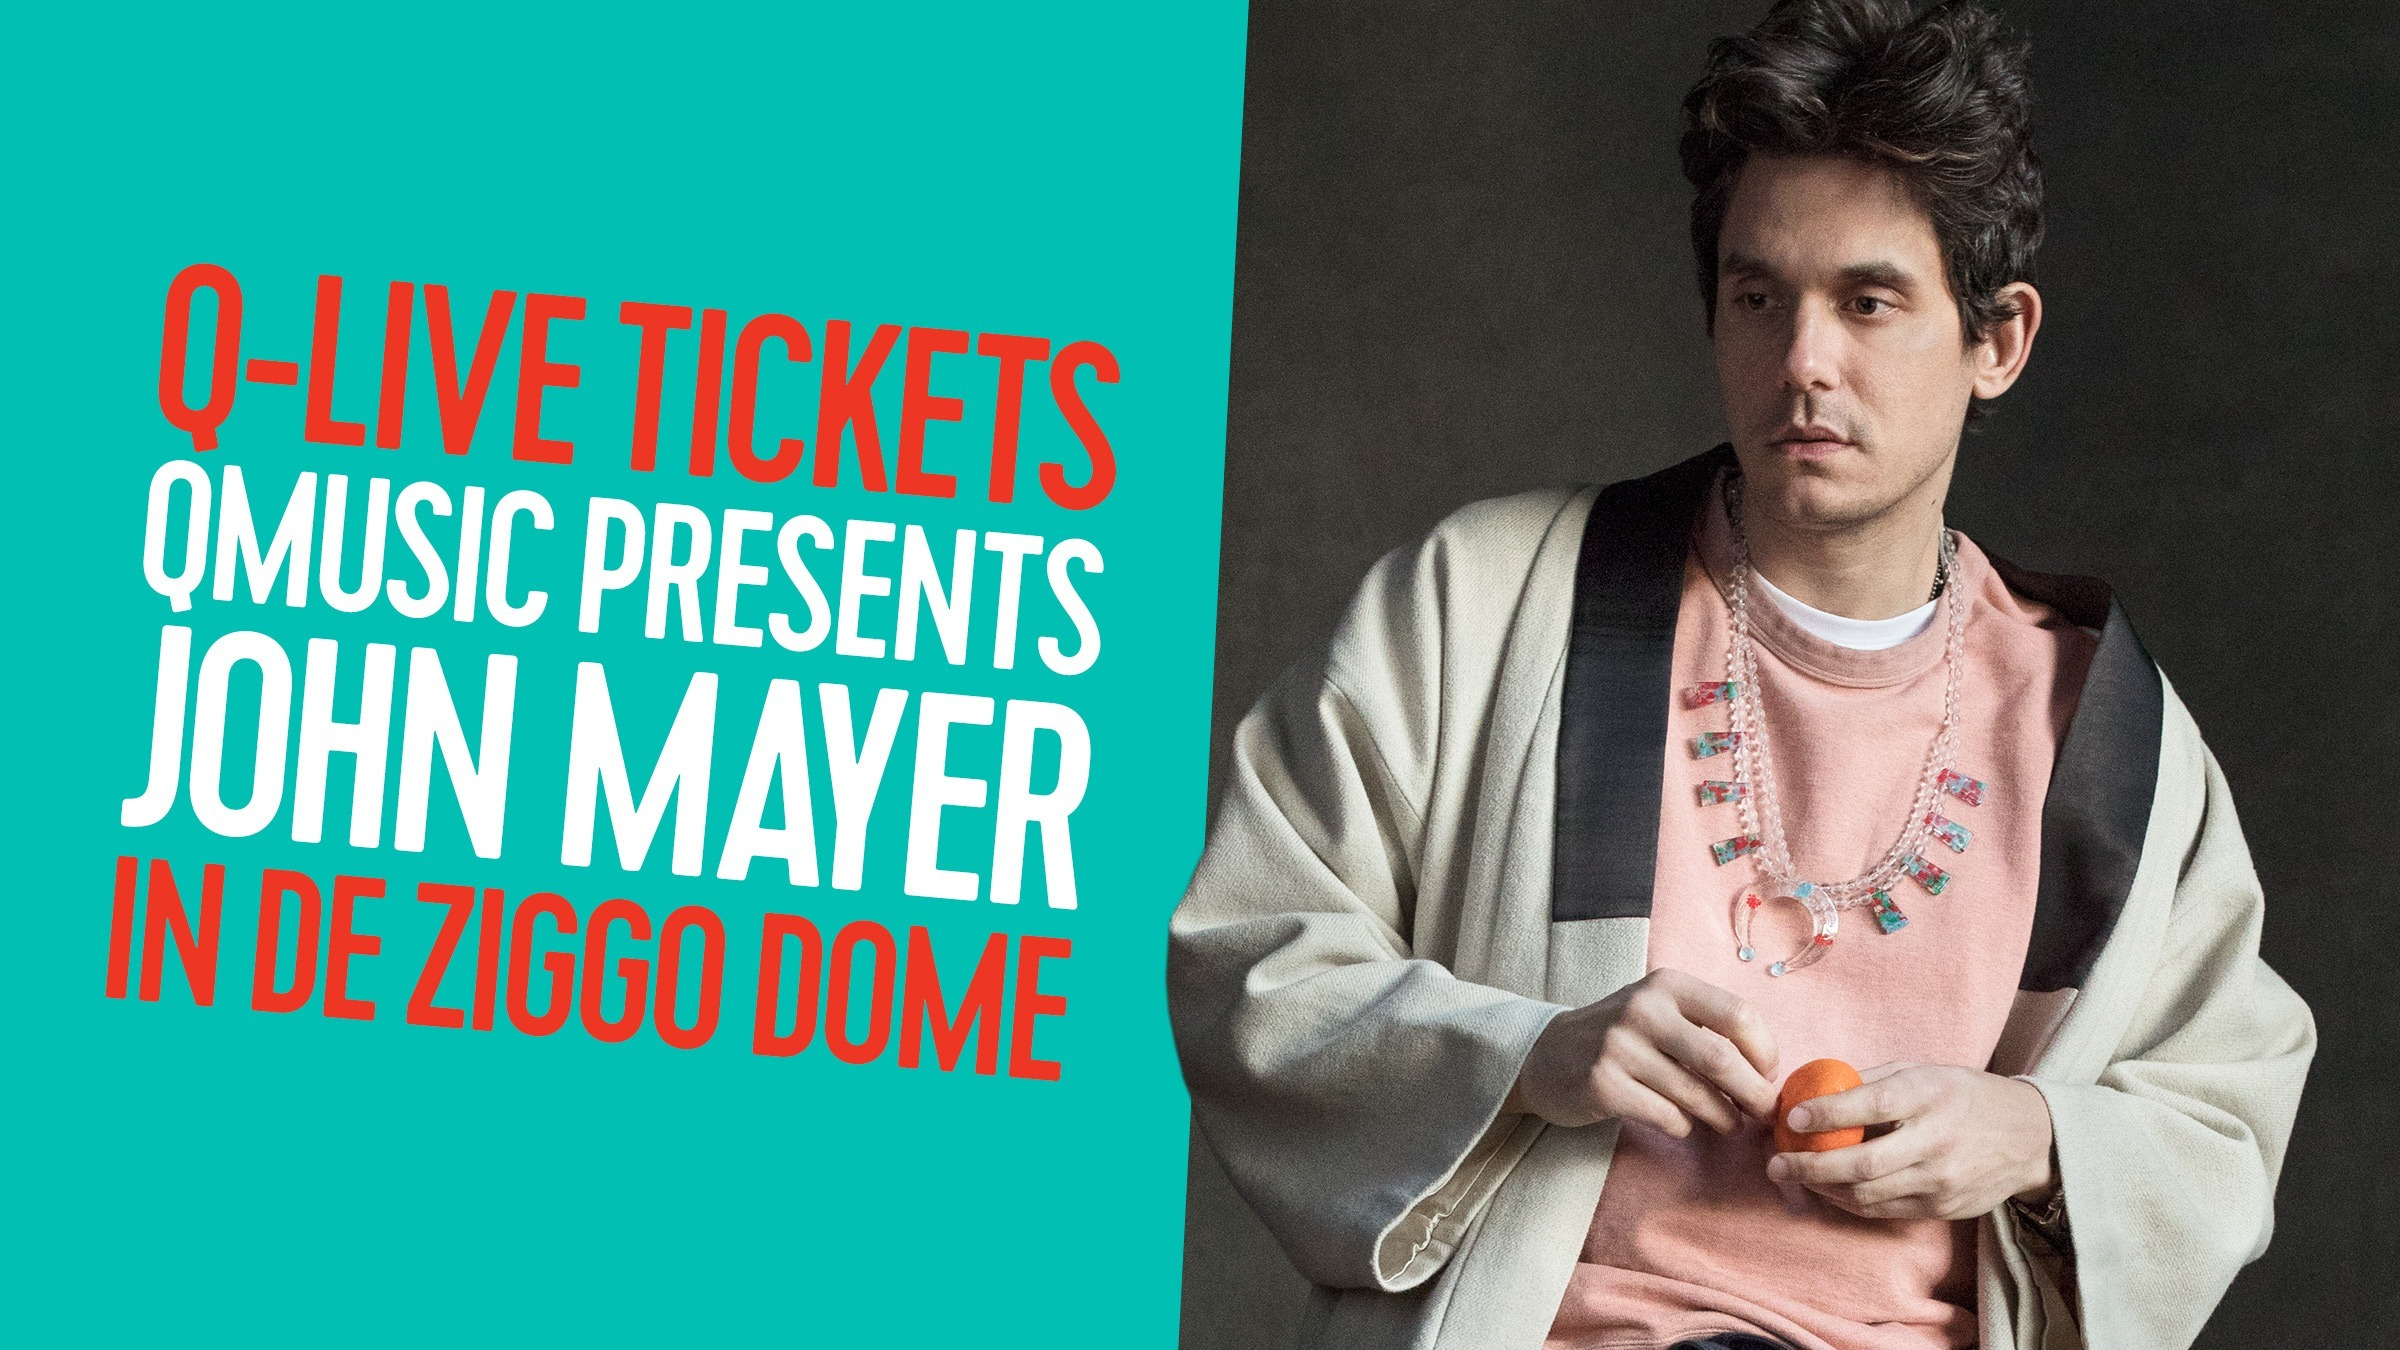 Qmusic teaser johnmayer qmusic